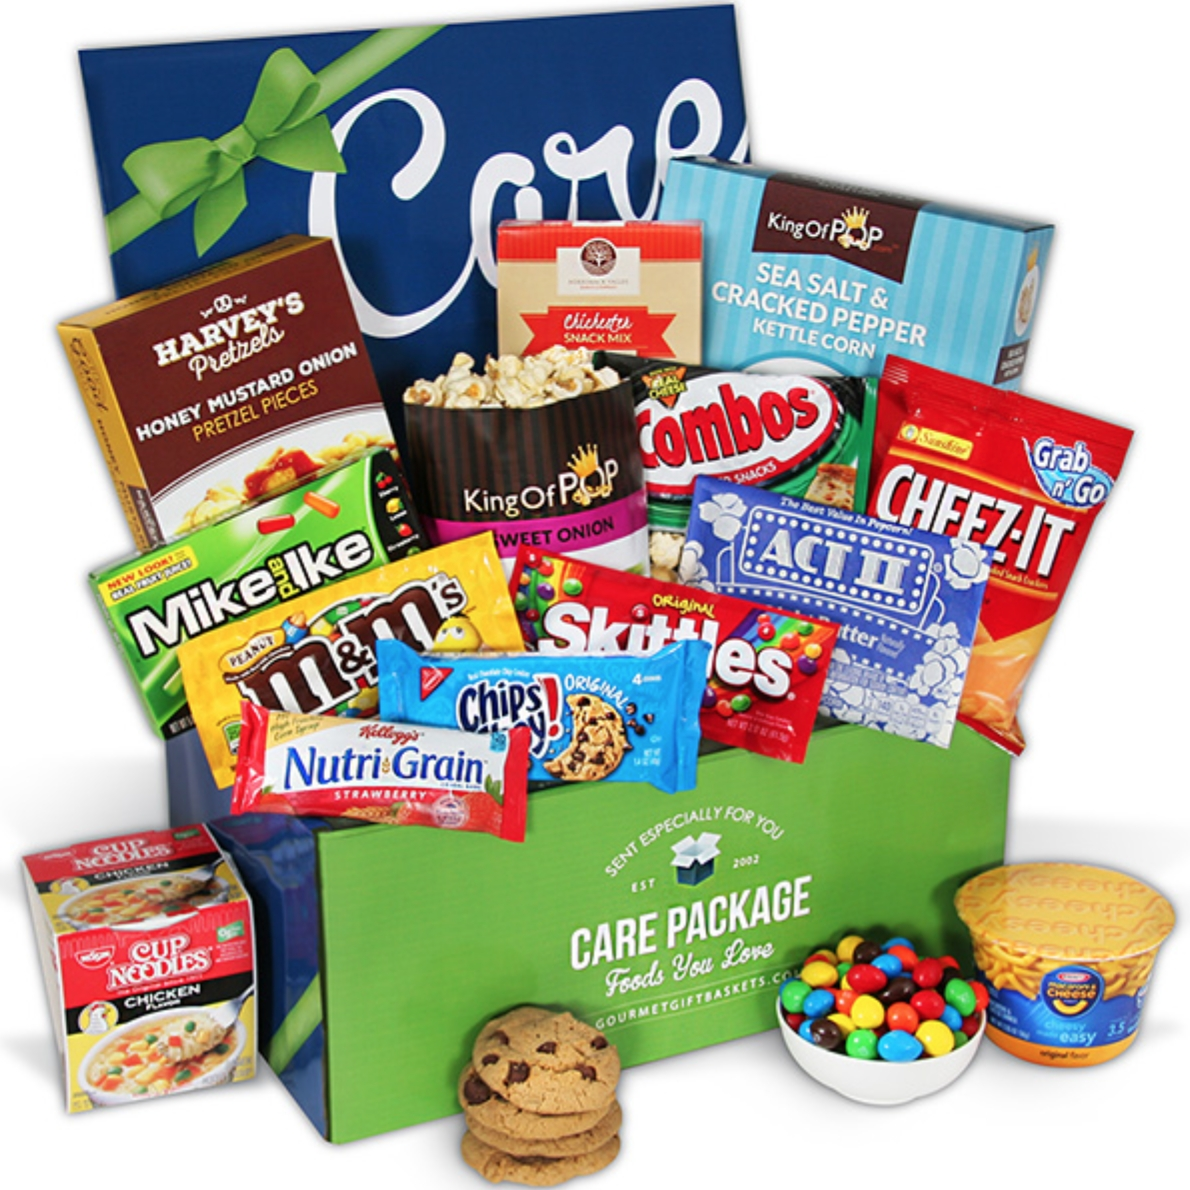 10 Attractive Final Exam Care Package Ideas final care package ideas 2021